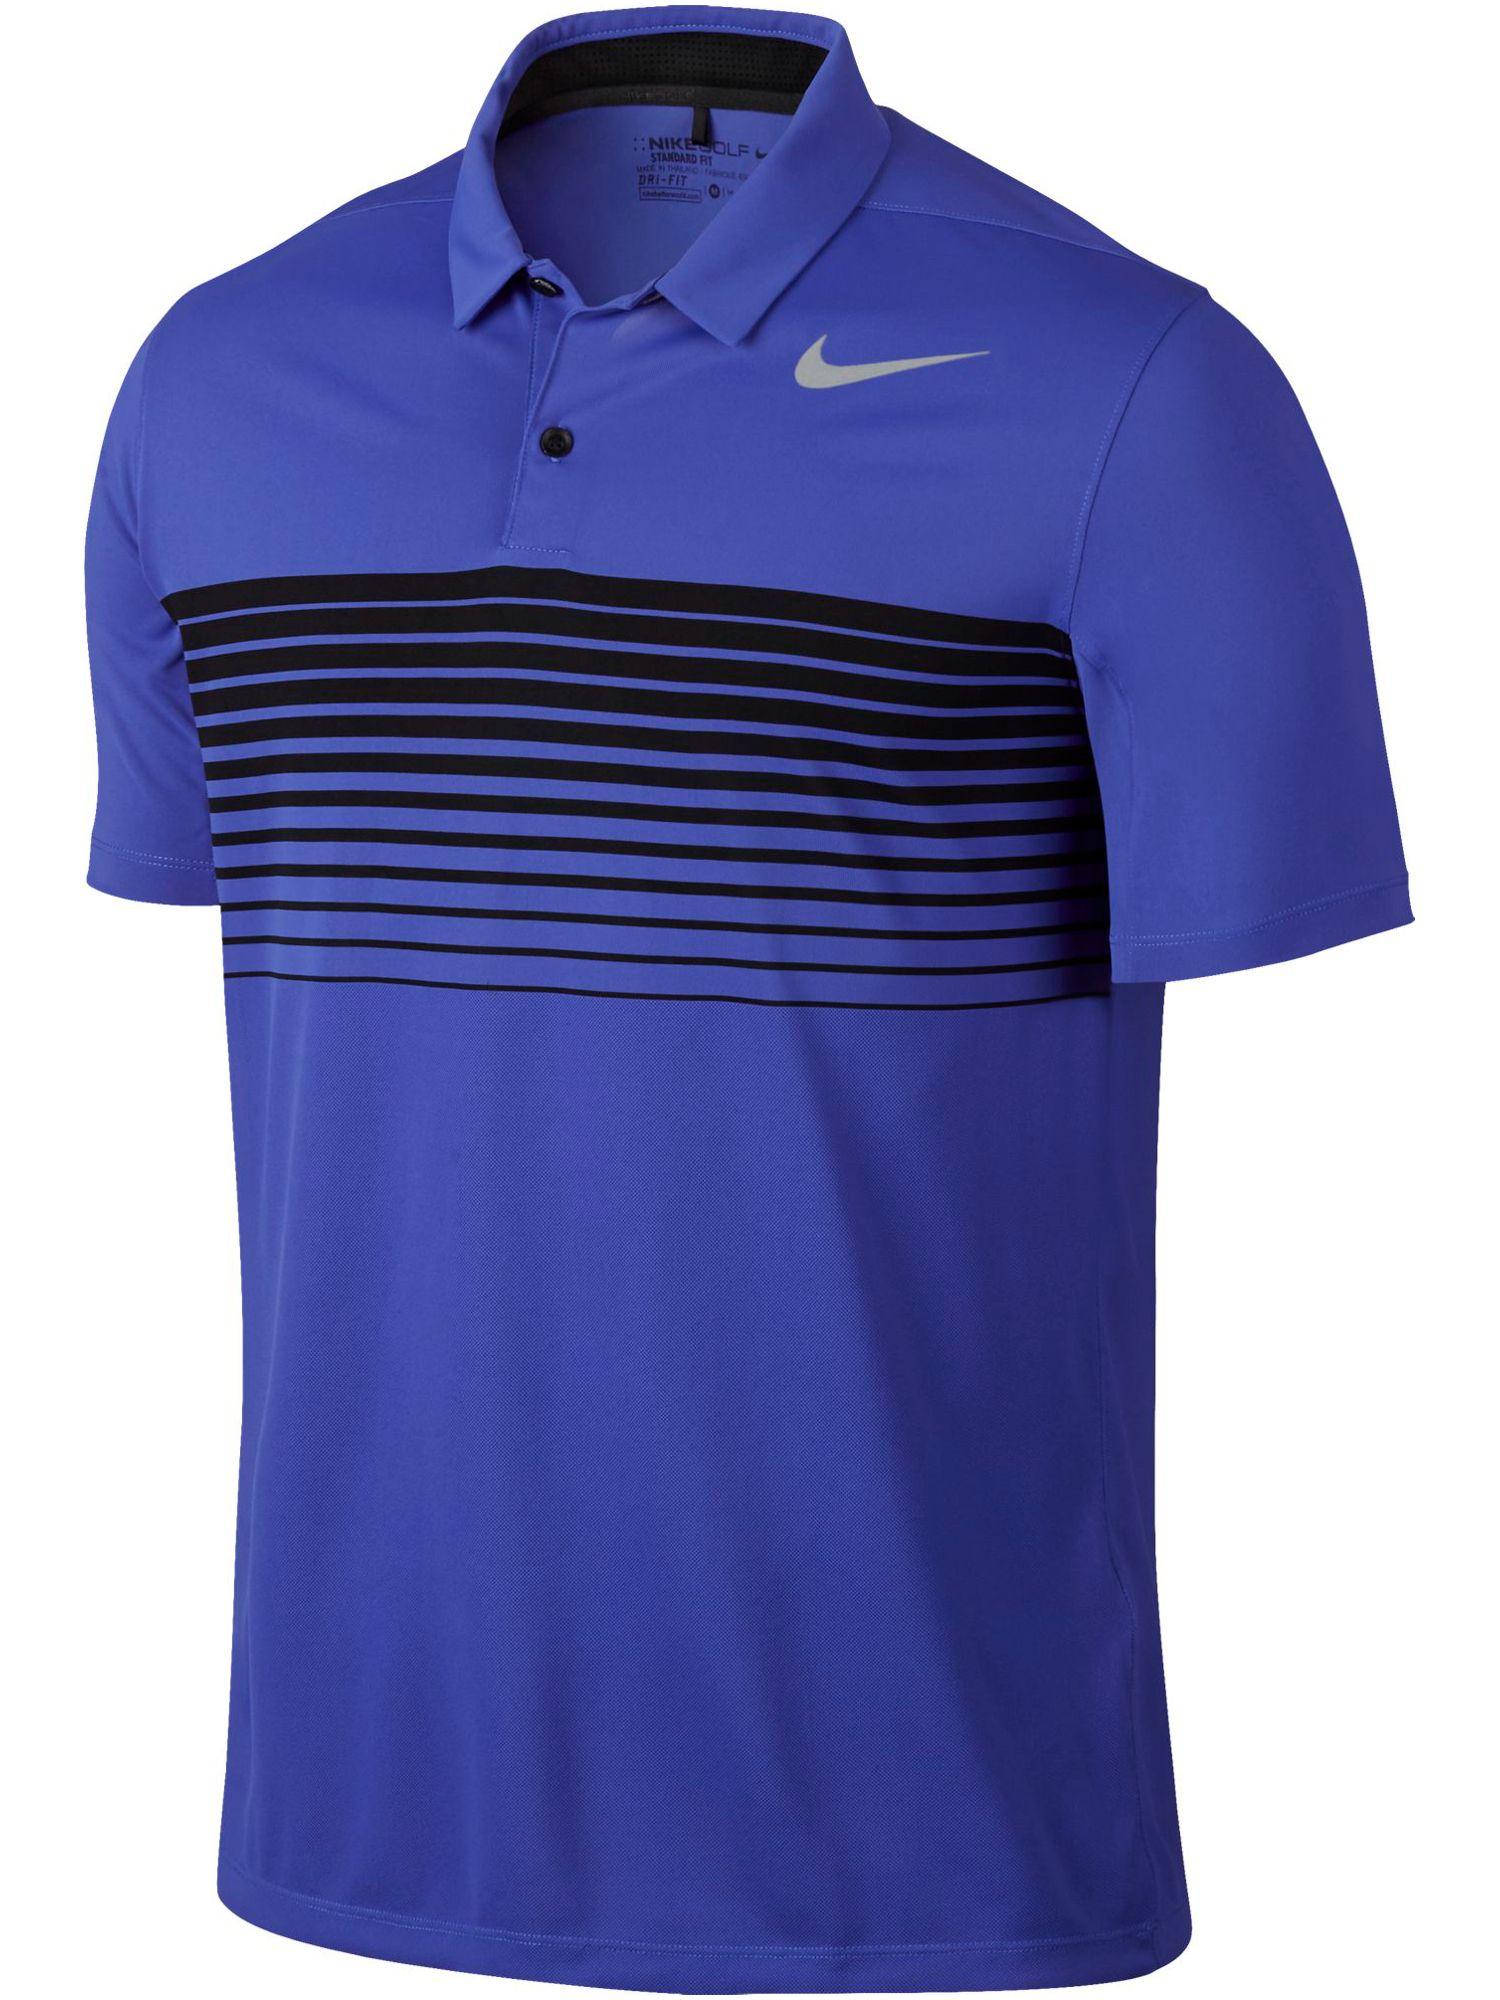 Men's Nike Mobility Speed Stripe Polo, Blue